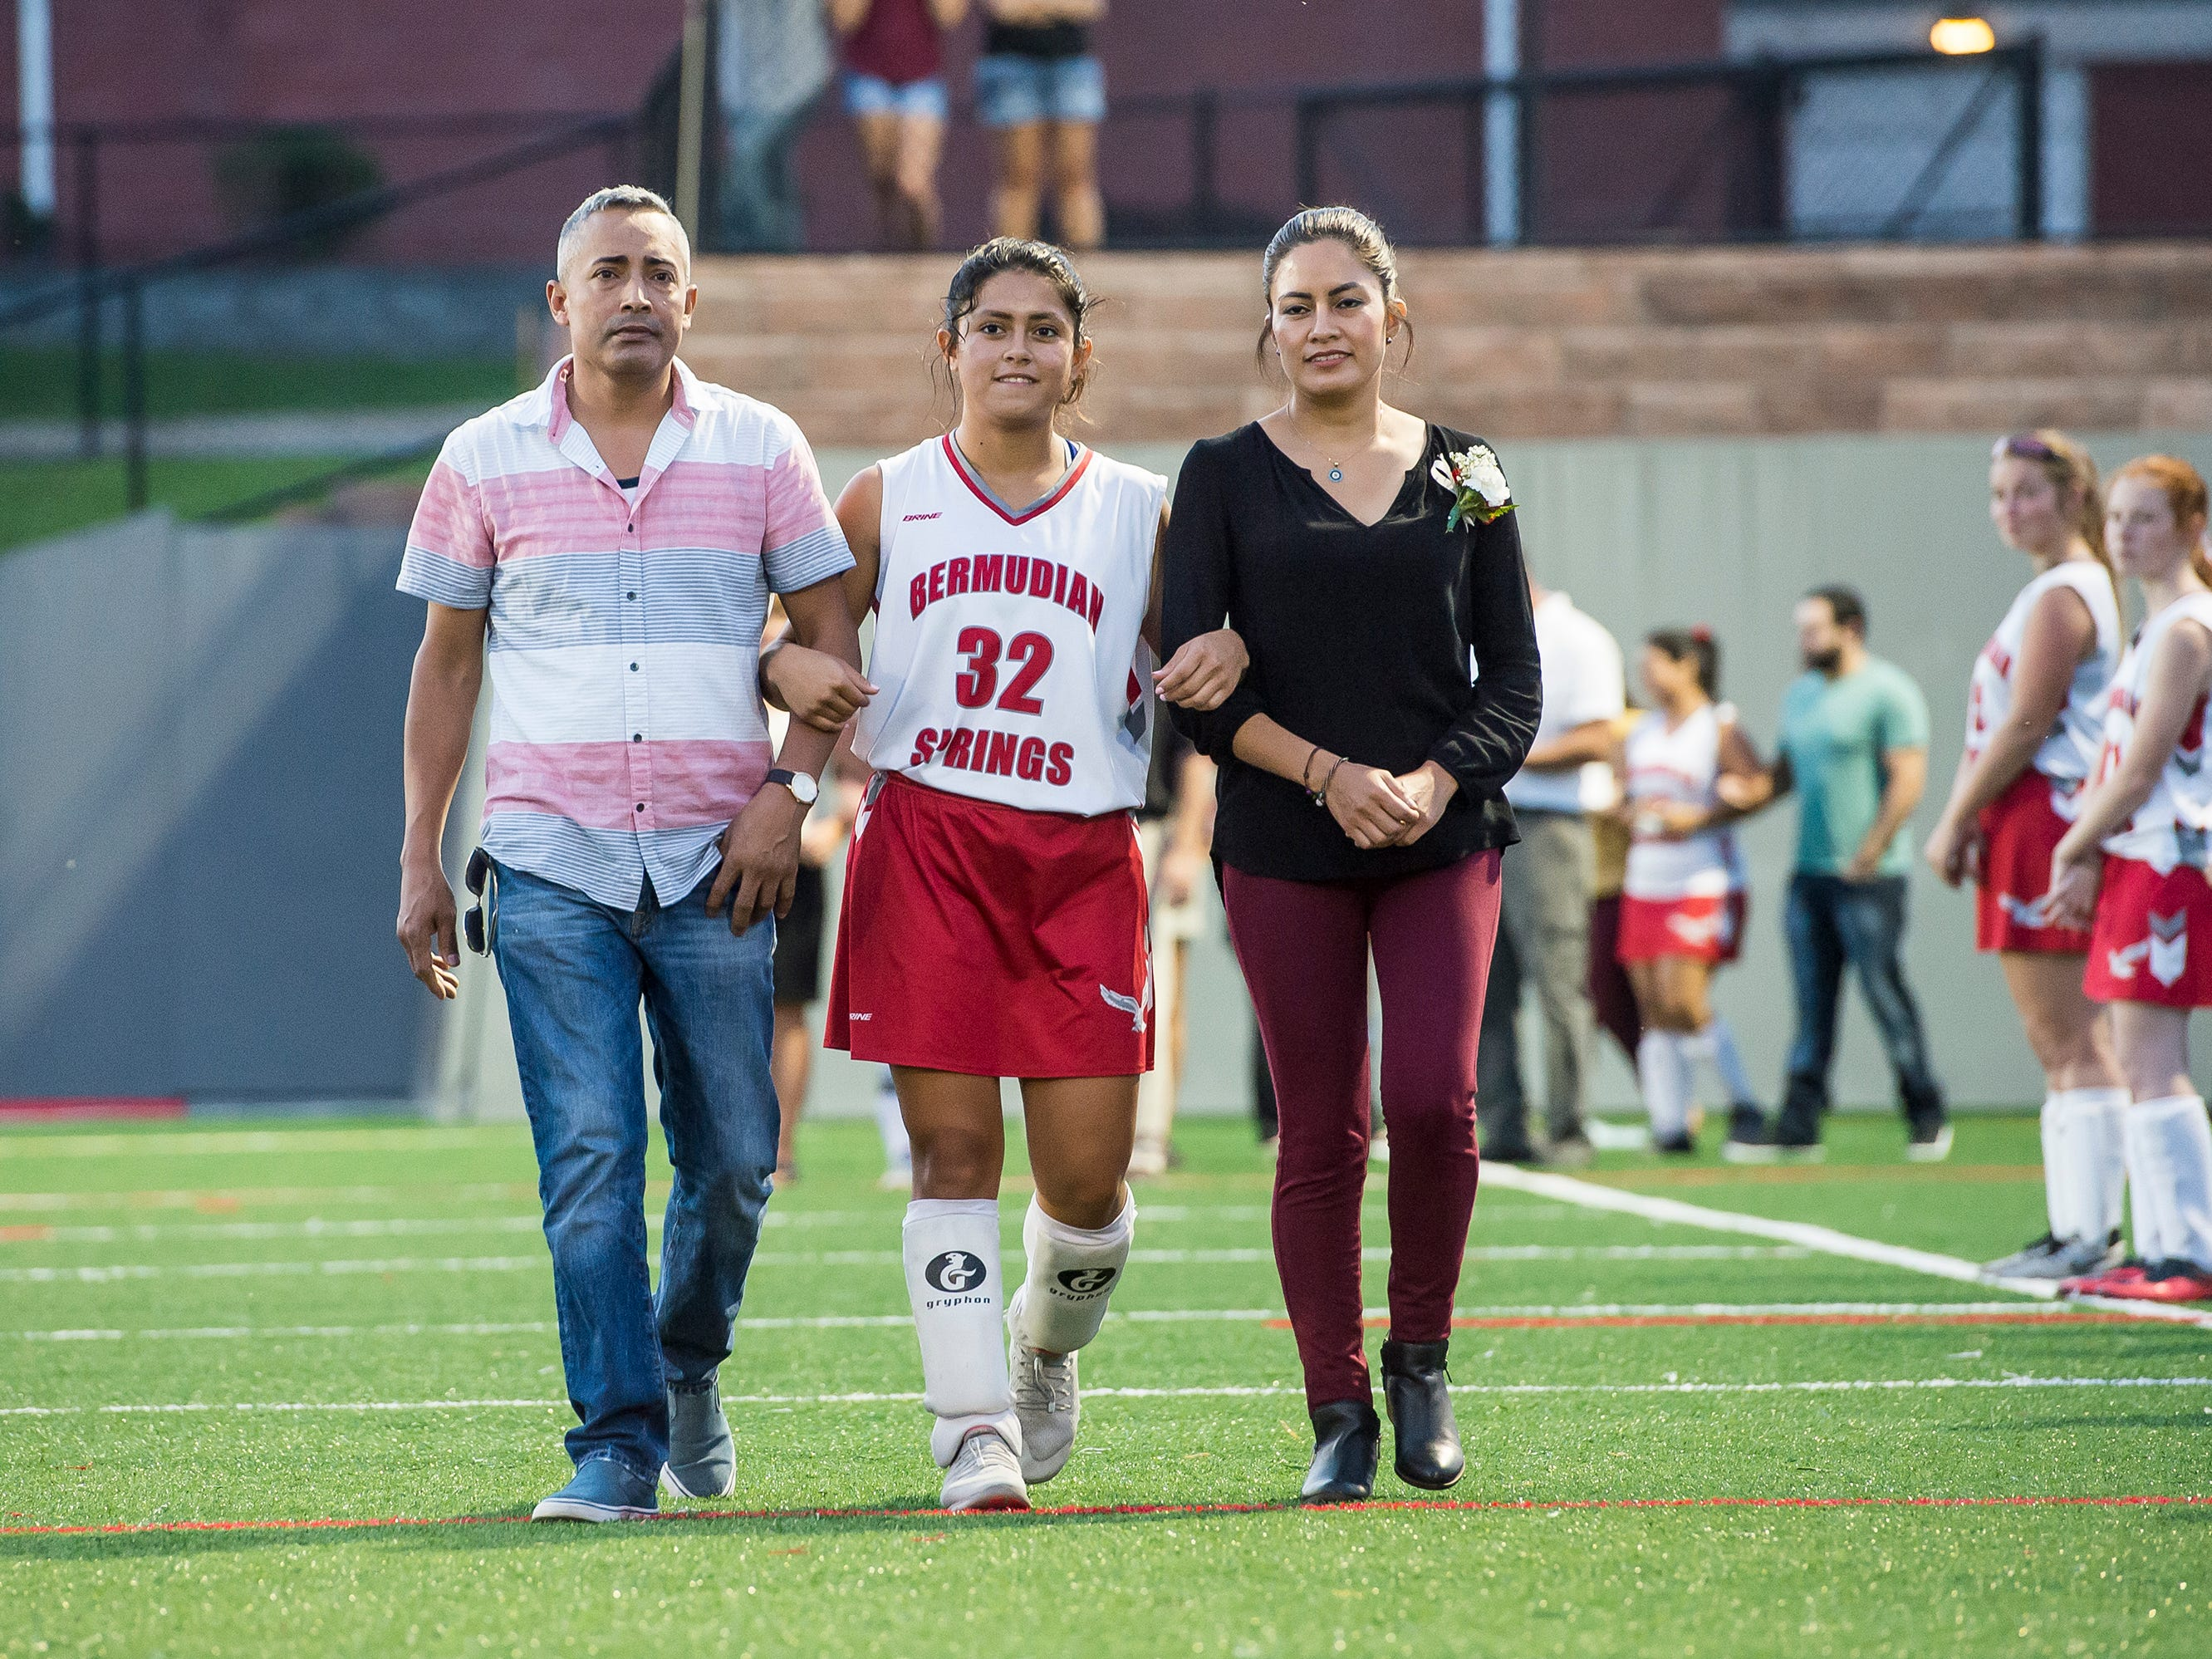 Bermudian Springs senior Cecilia Lua is recognized during a senior appreciation night following a game against Littlestown on Tuesday, October 9, 2018.